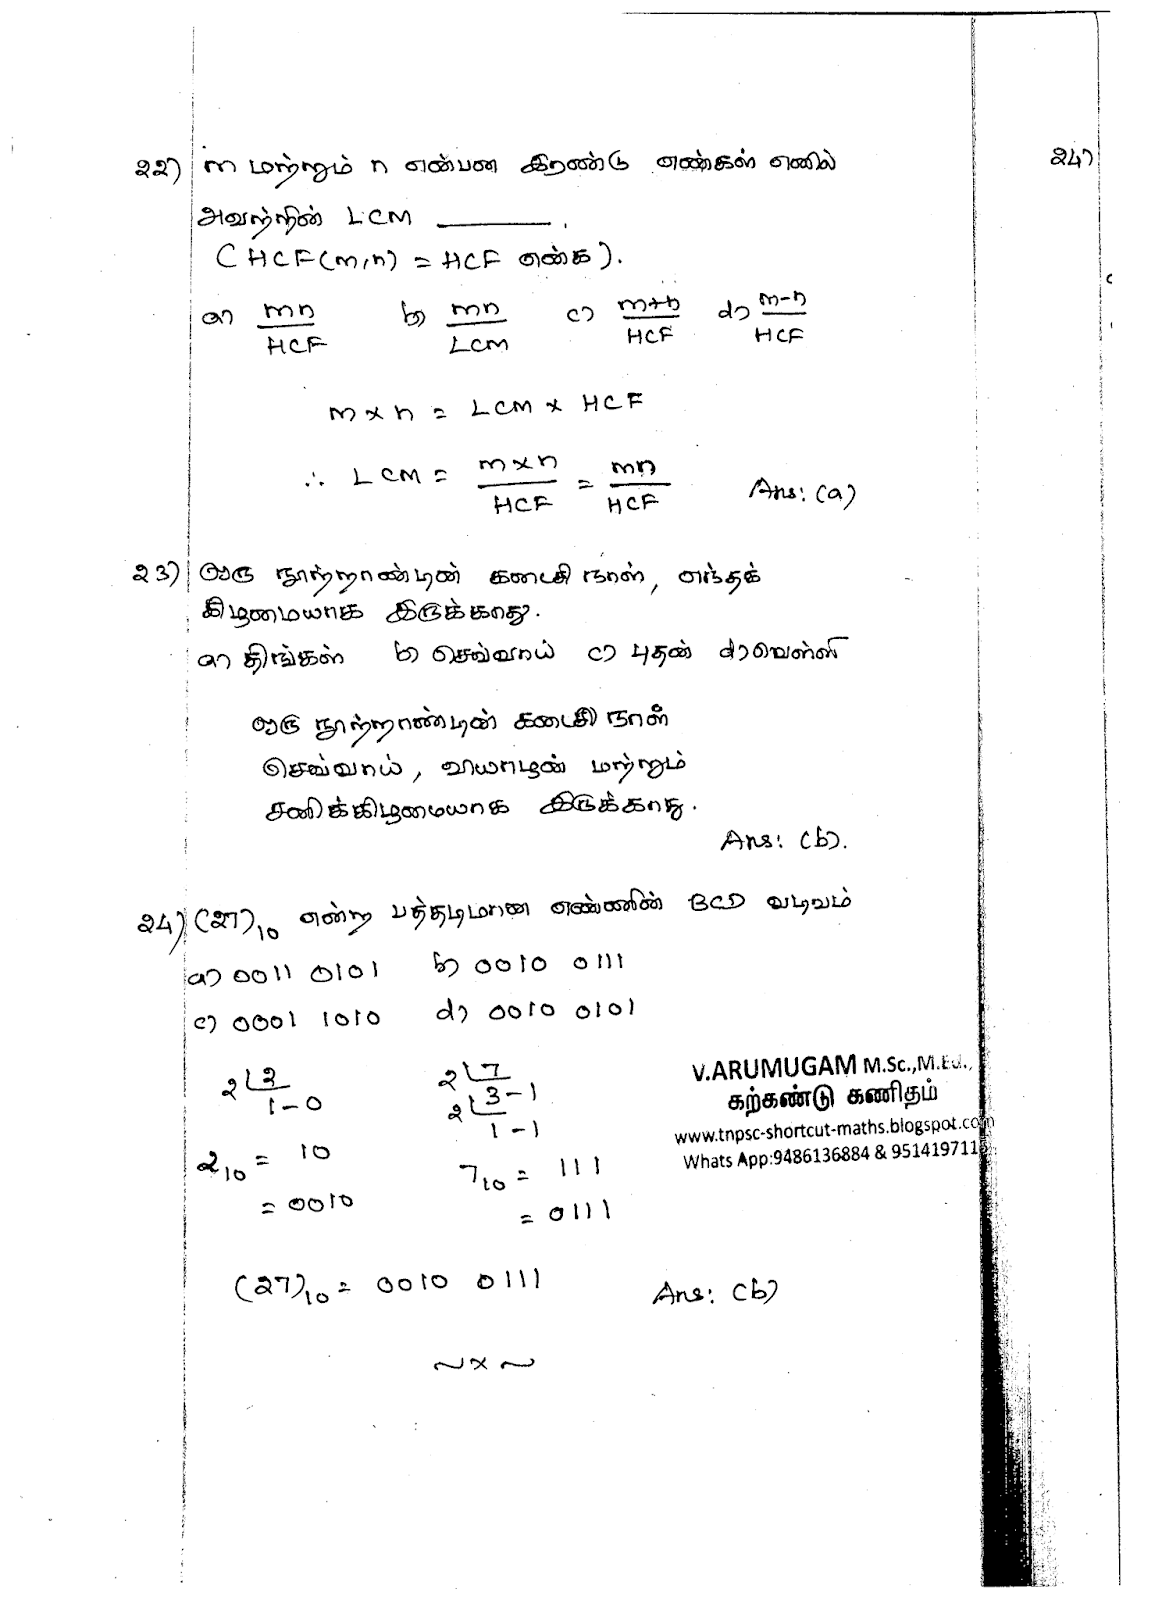 TNPSC – 2019 - Combined Engineering Services Examination - EXAM DATE: 10.08.2019. PAGE - 12/12